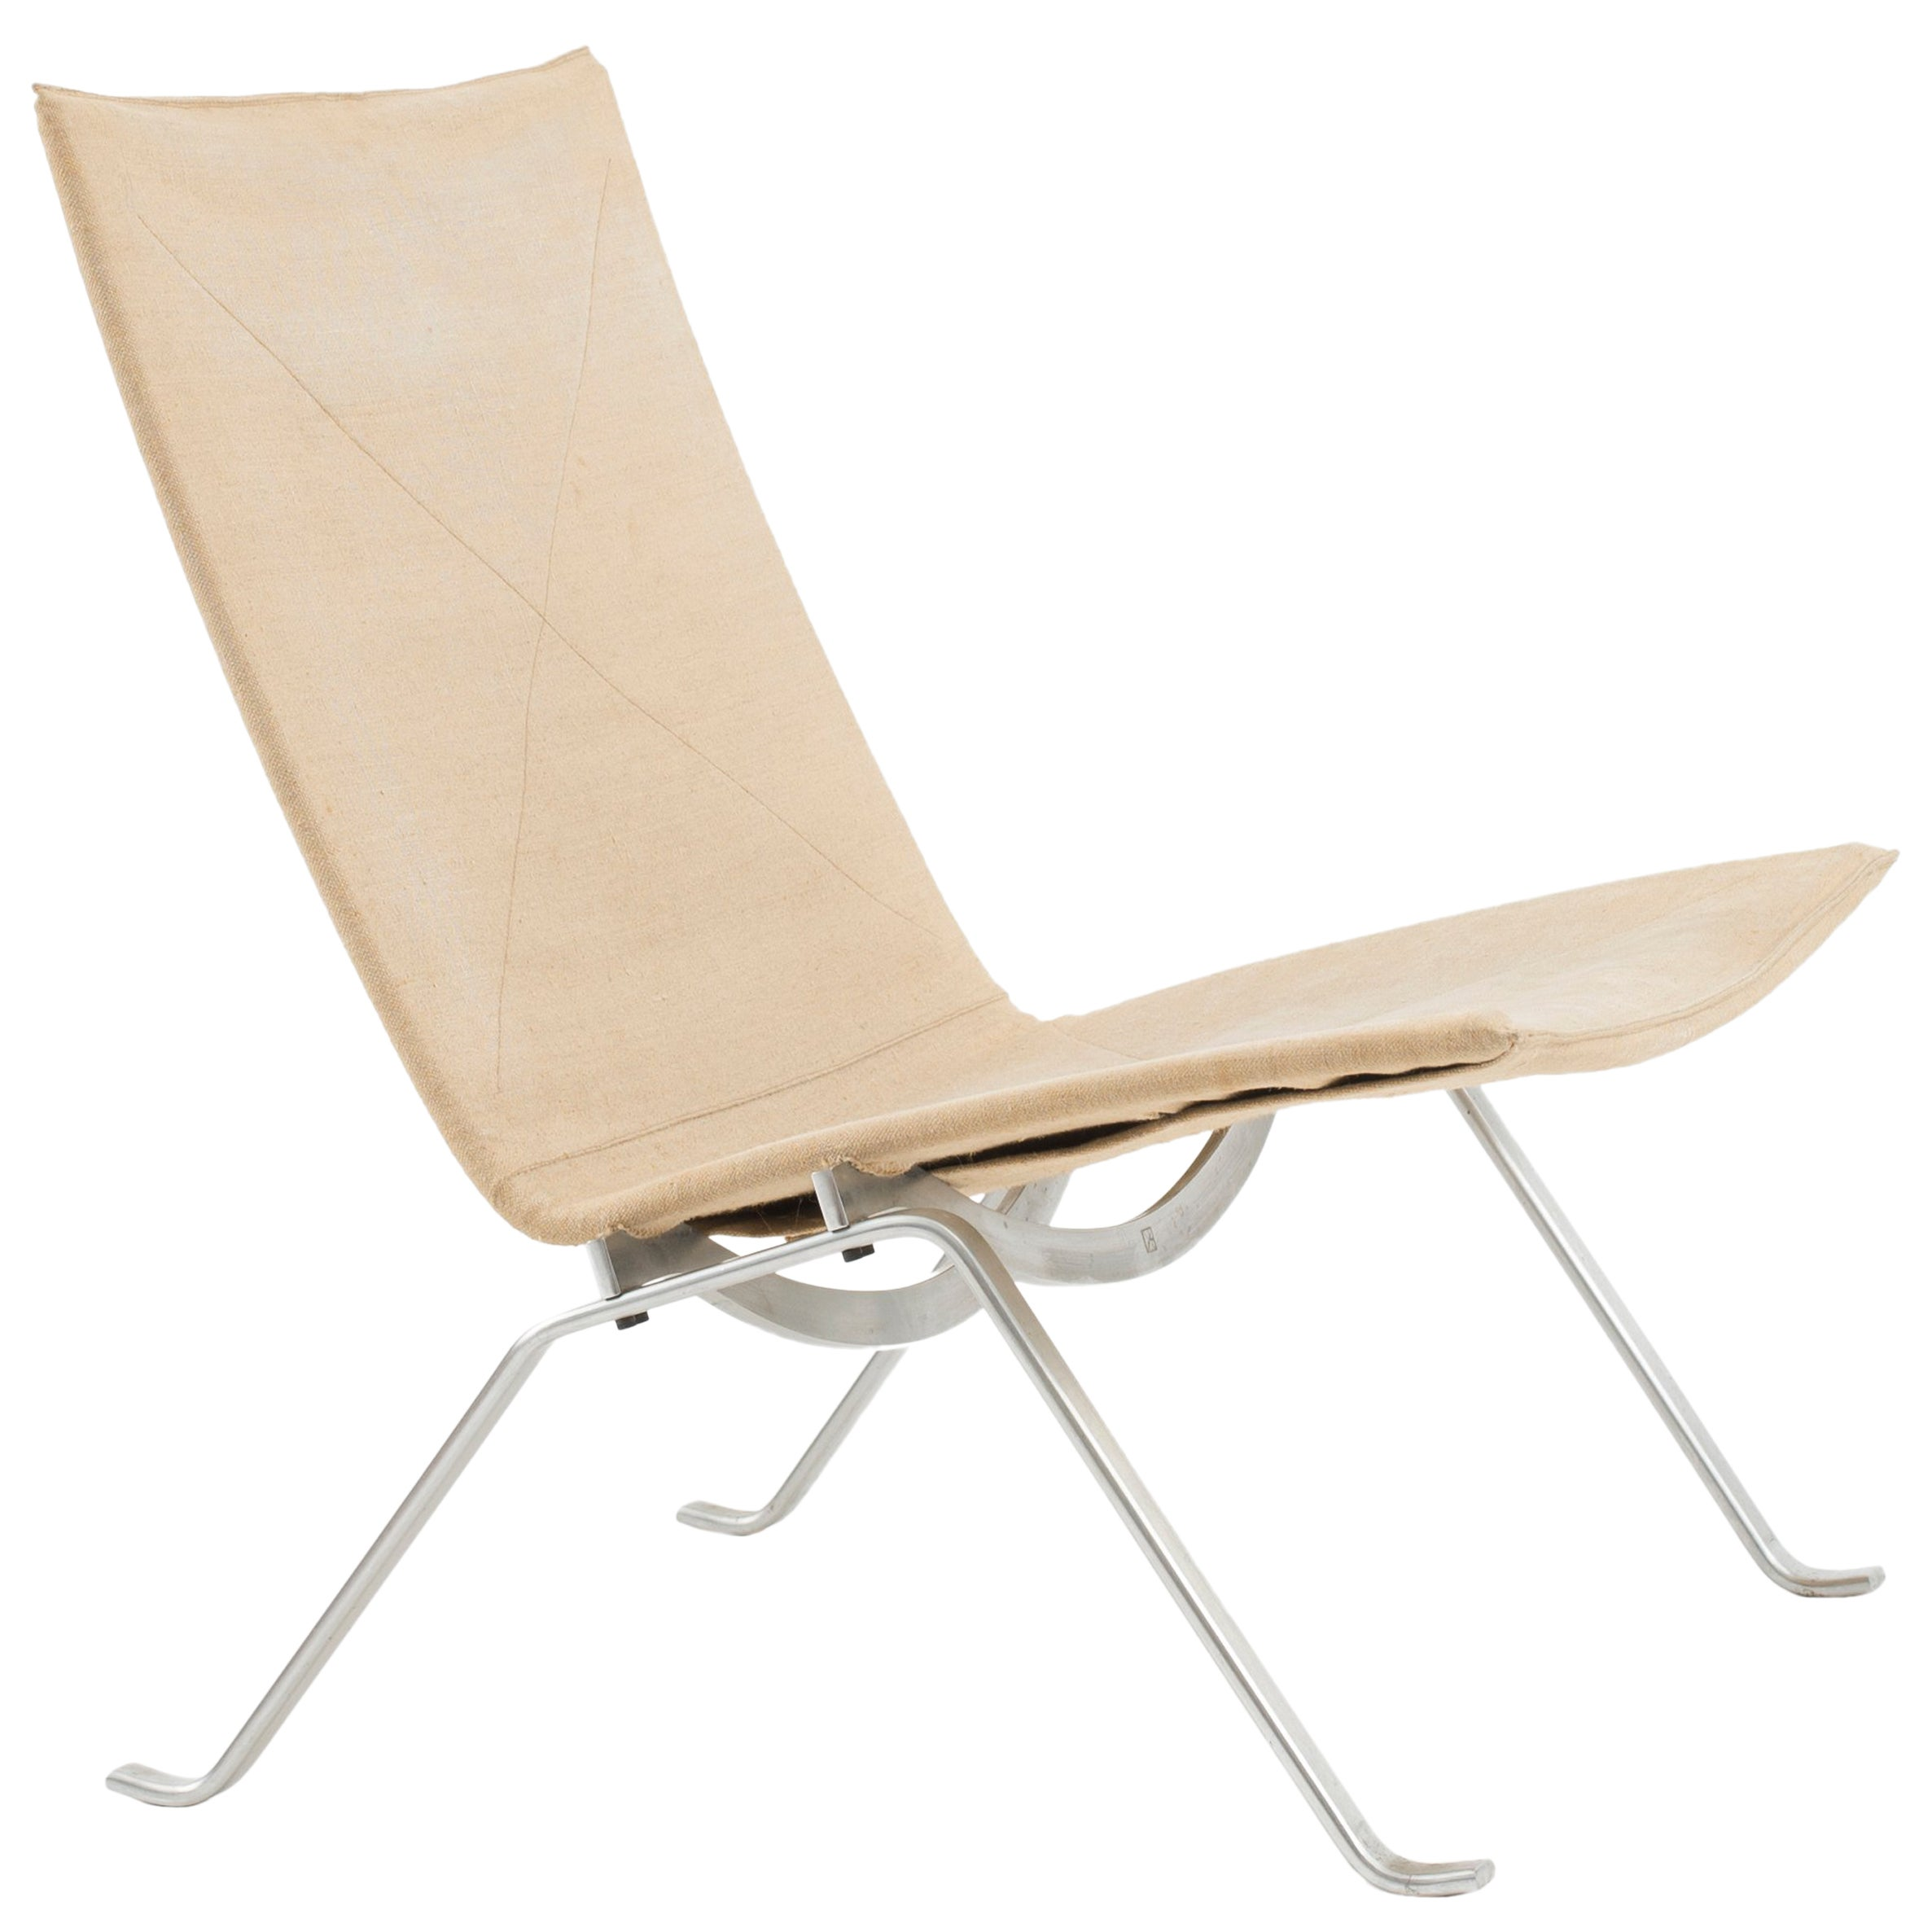 Poul Kjaerholm PK22 in Canvas for E. Kold Christensen